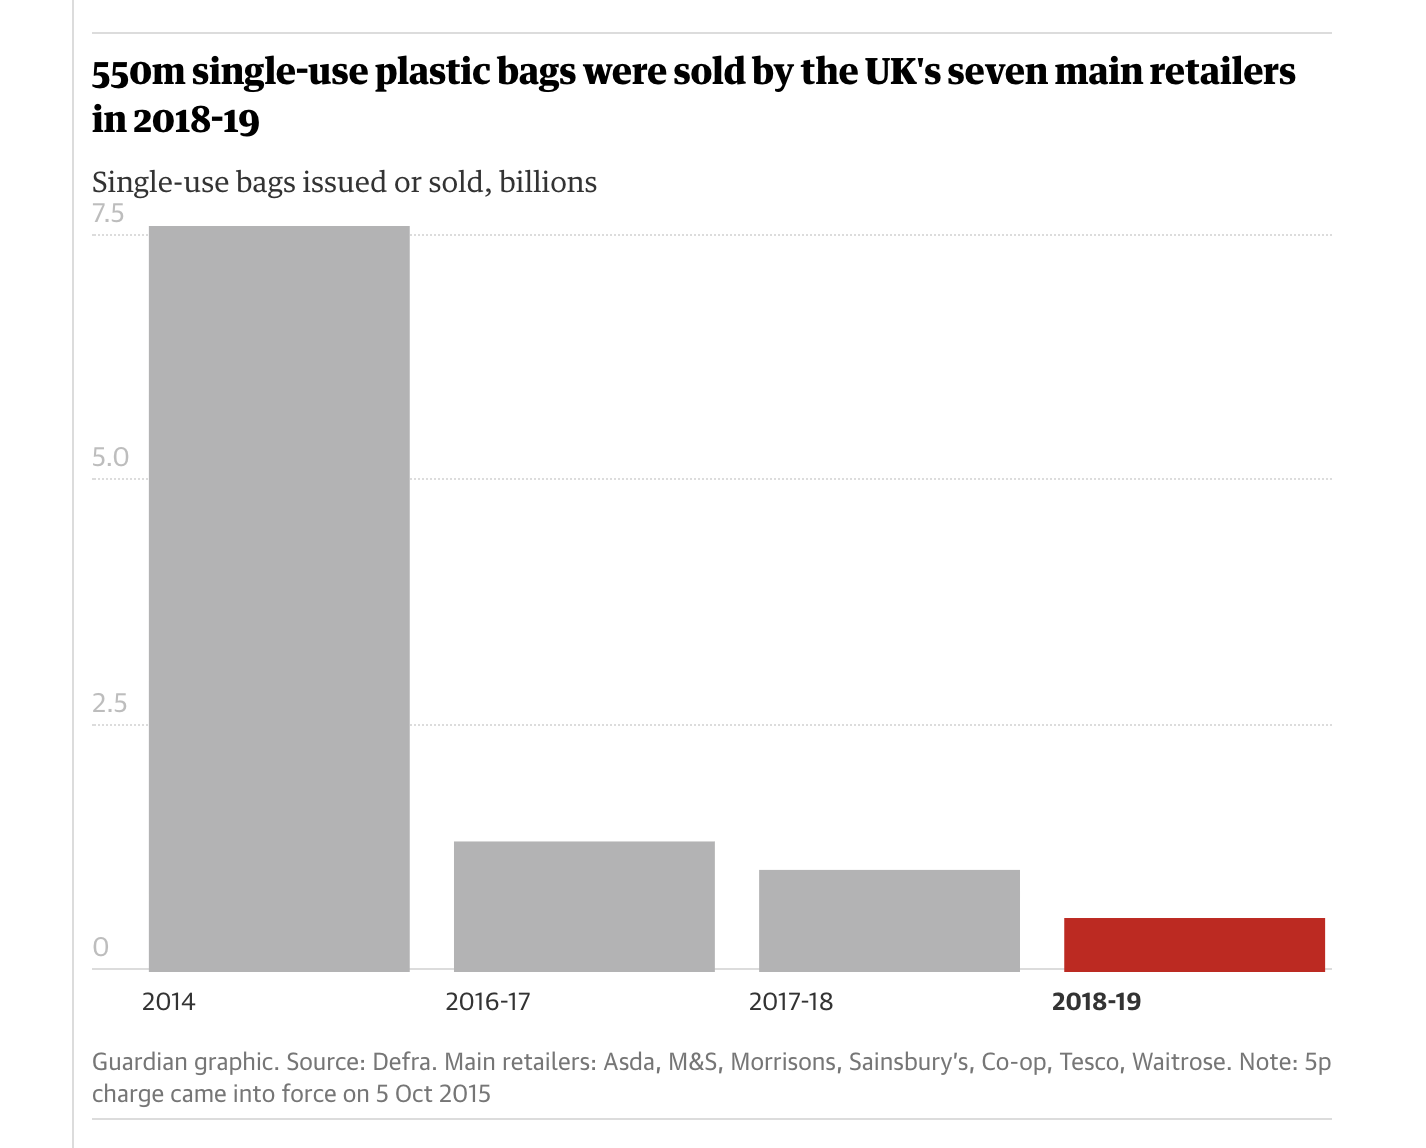 The reduction in plastic bag usage in the UK shows how targeted interventions can have a big impact